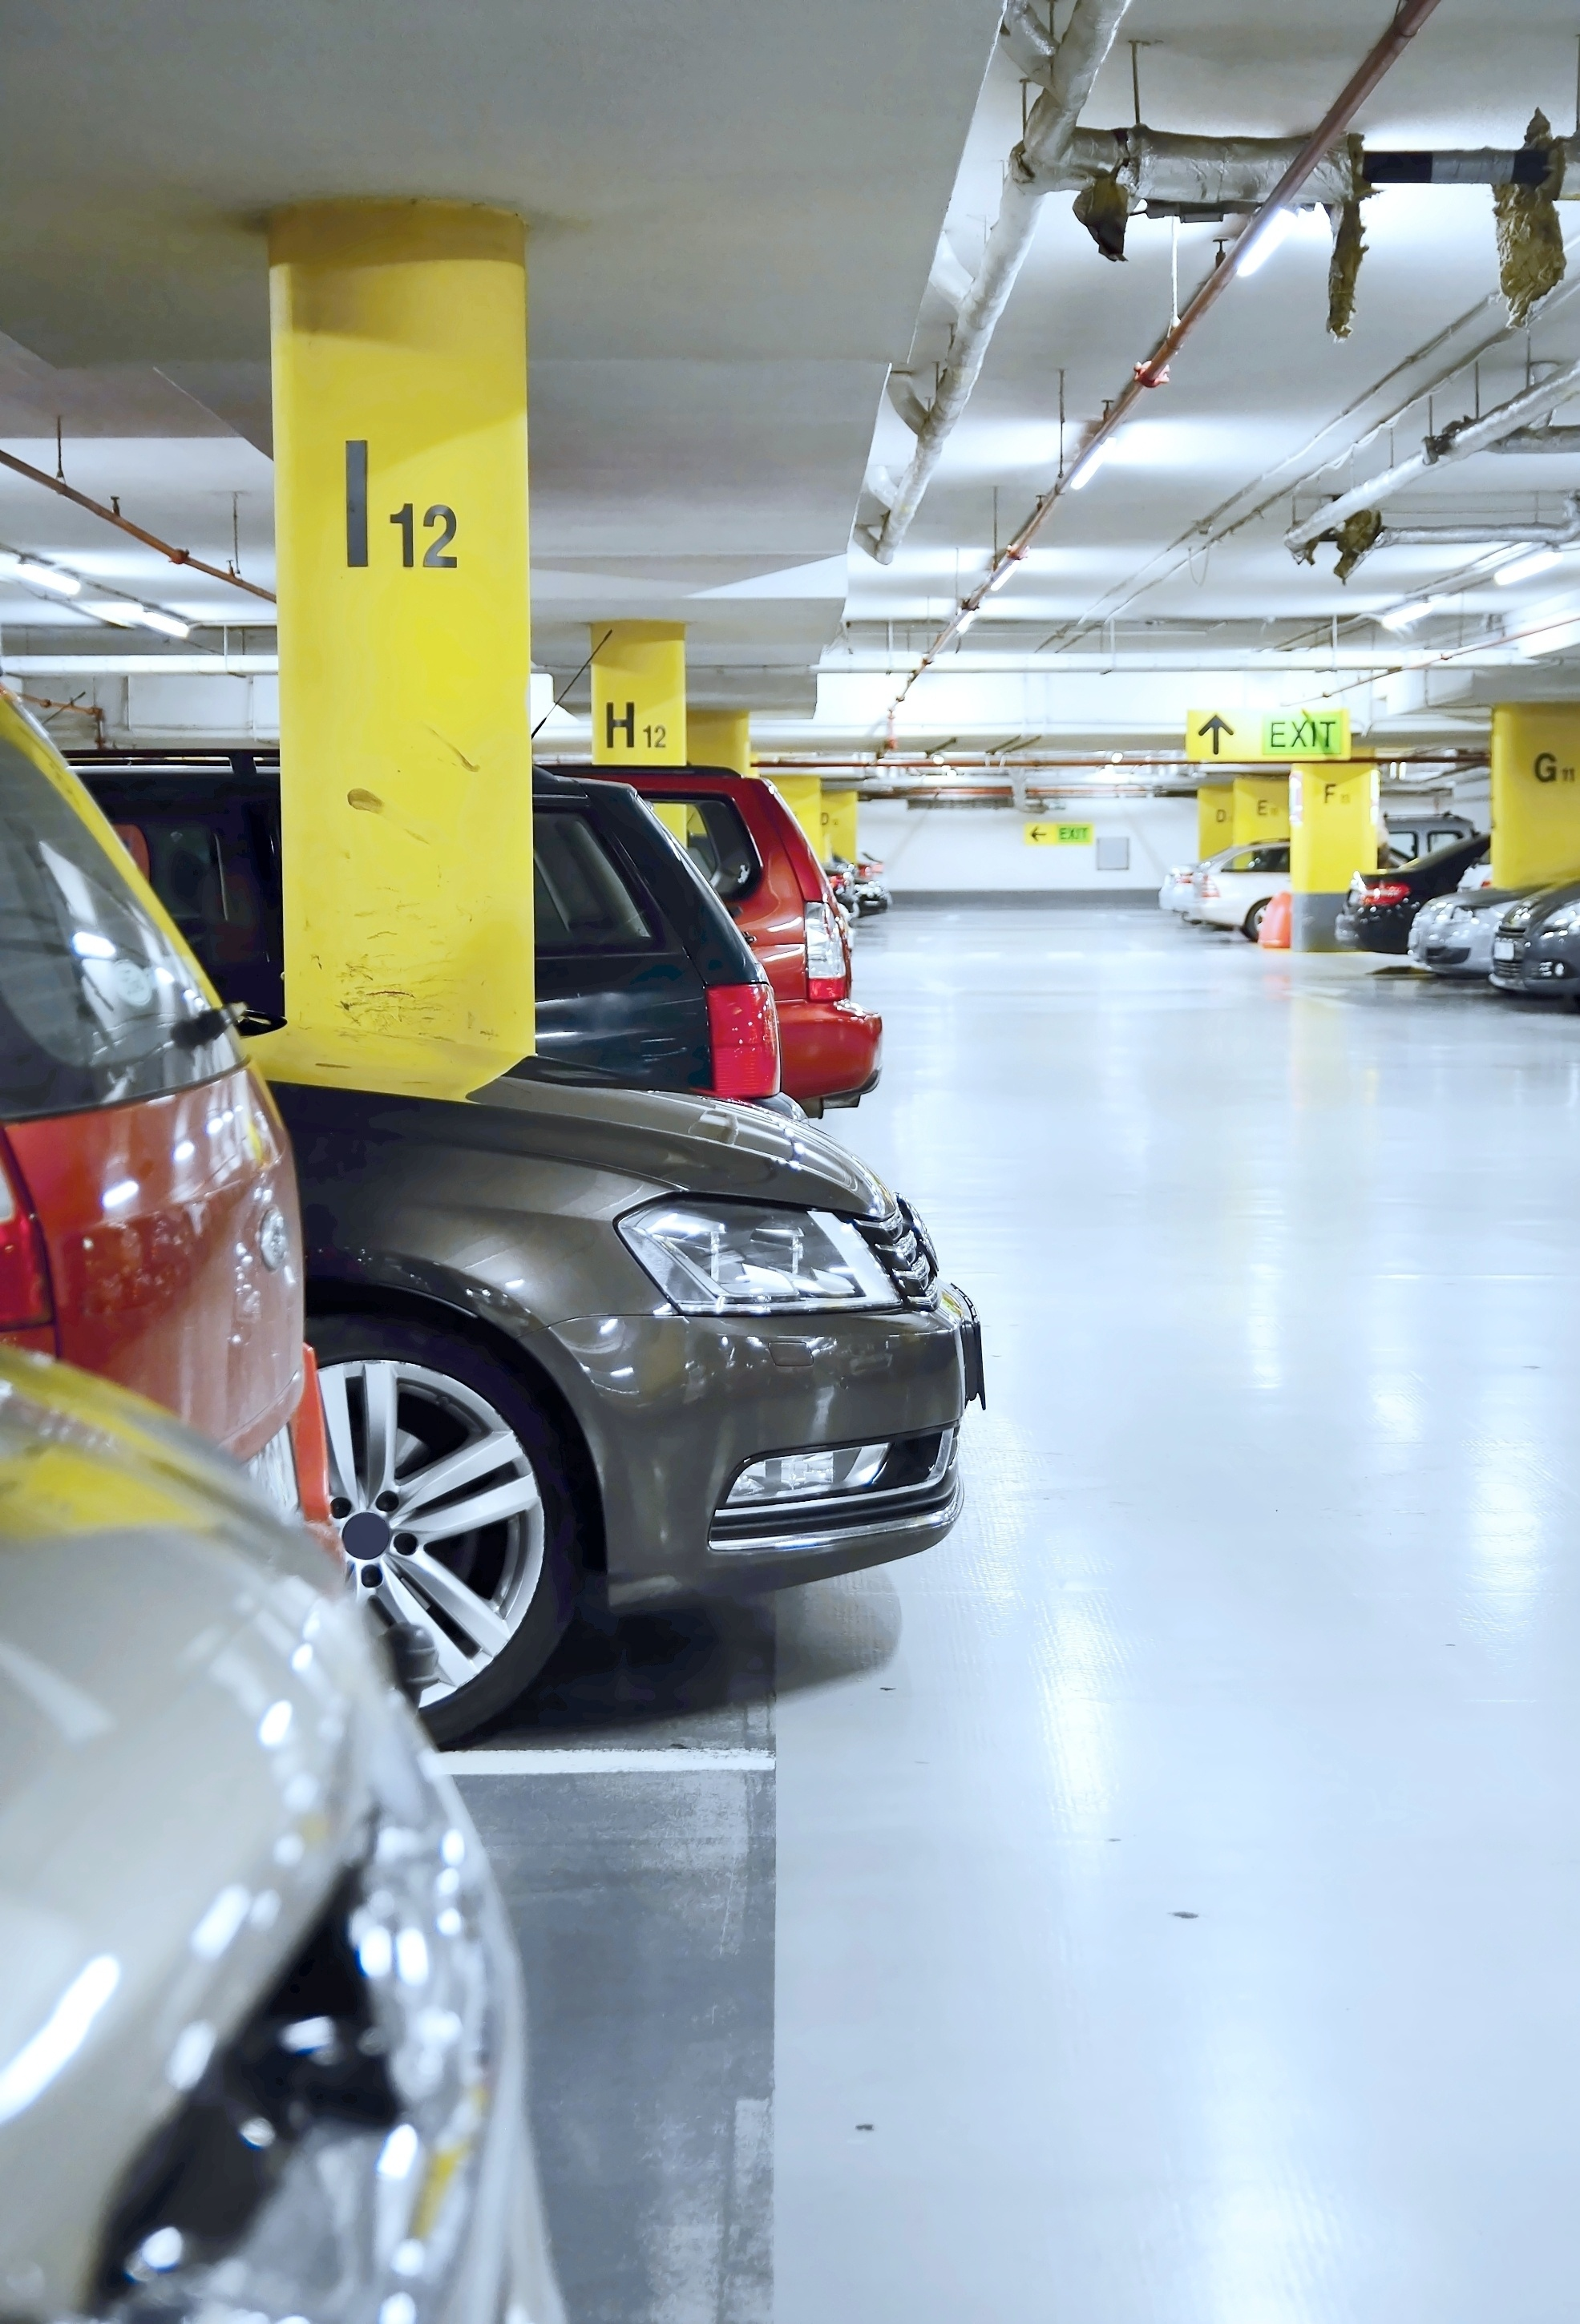 Underground parking garage at shopping center with parked cars.